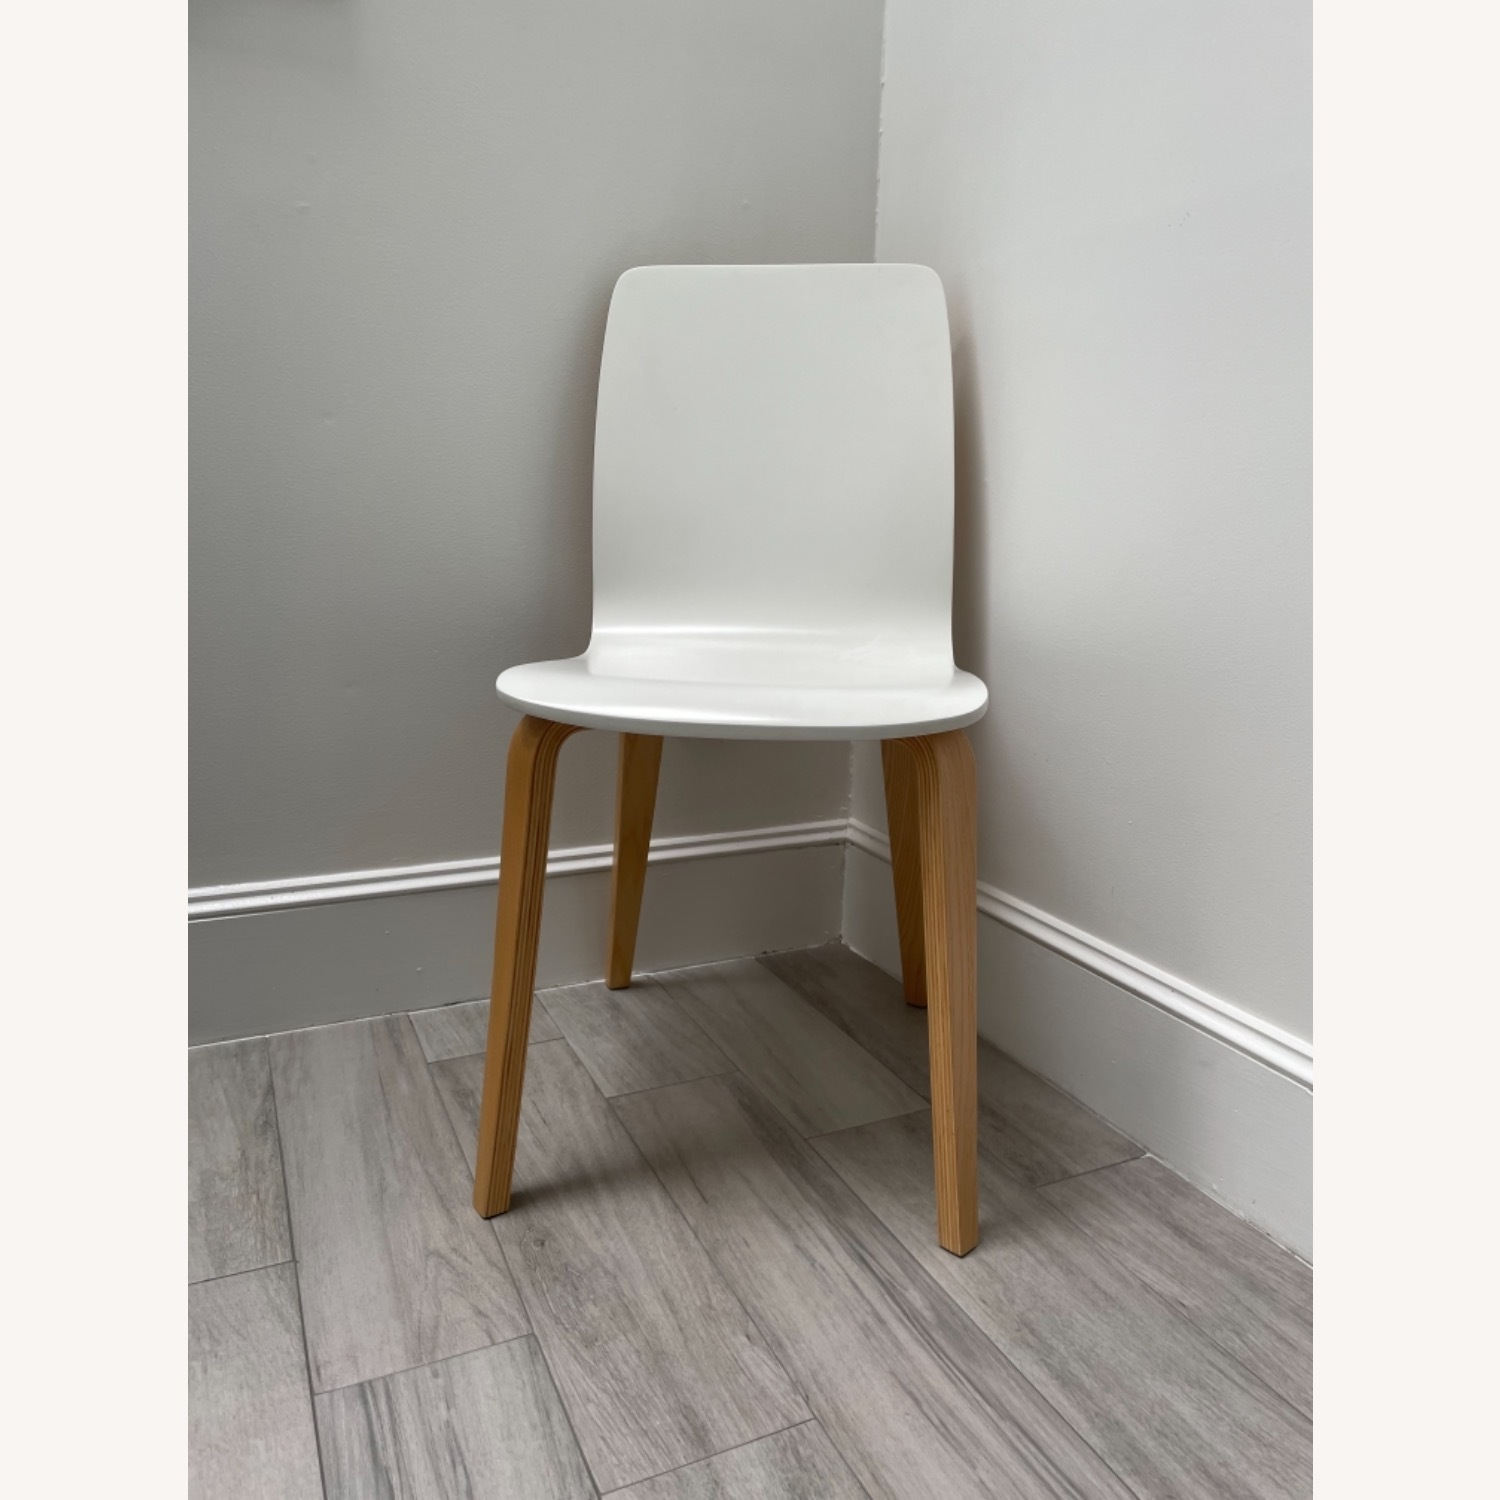 Anthropologie White Tamsin Dining Chairs (4) - image-1